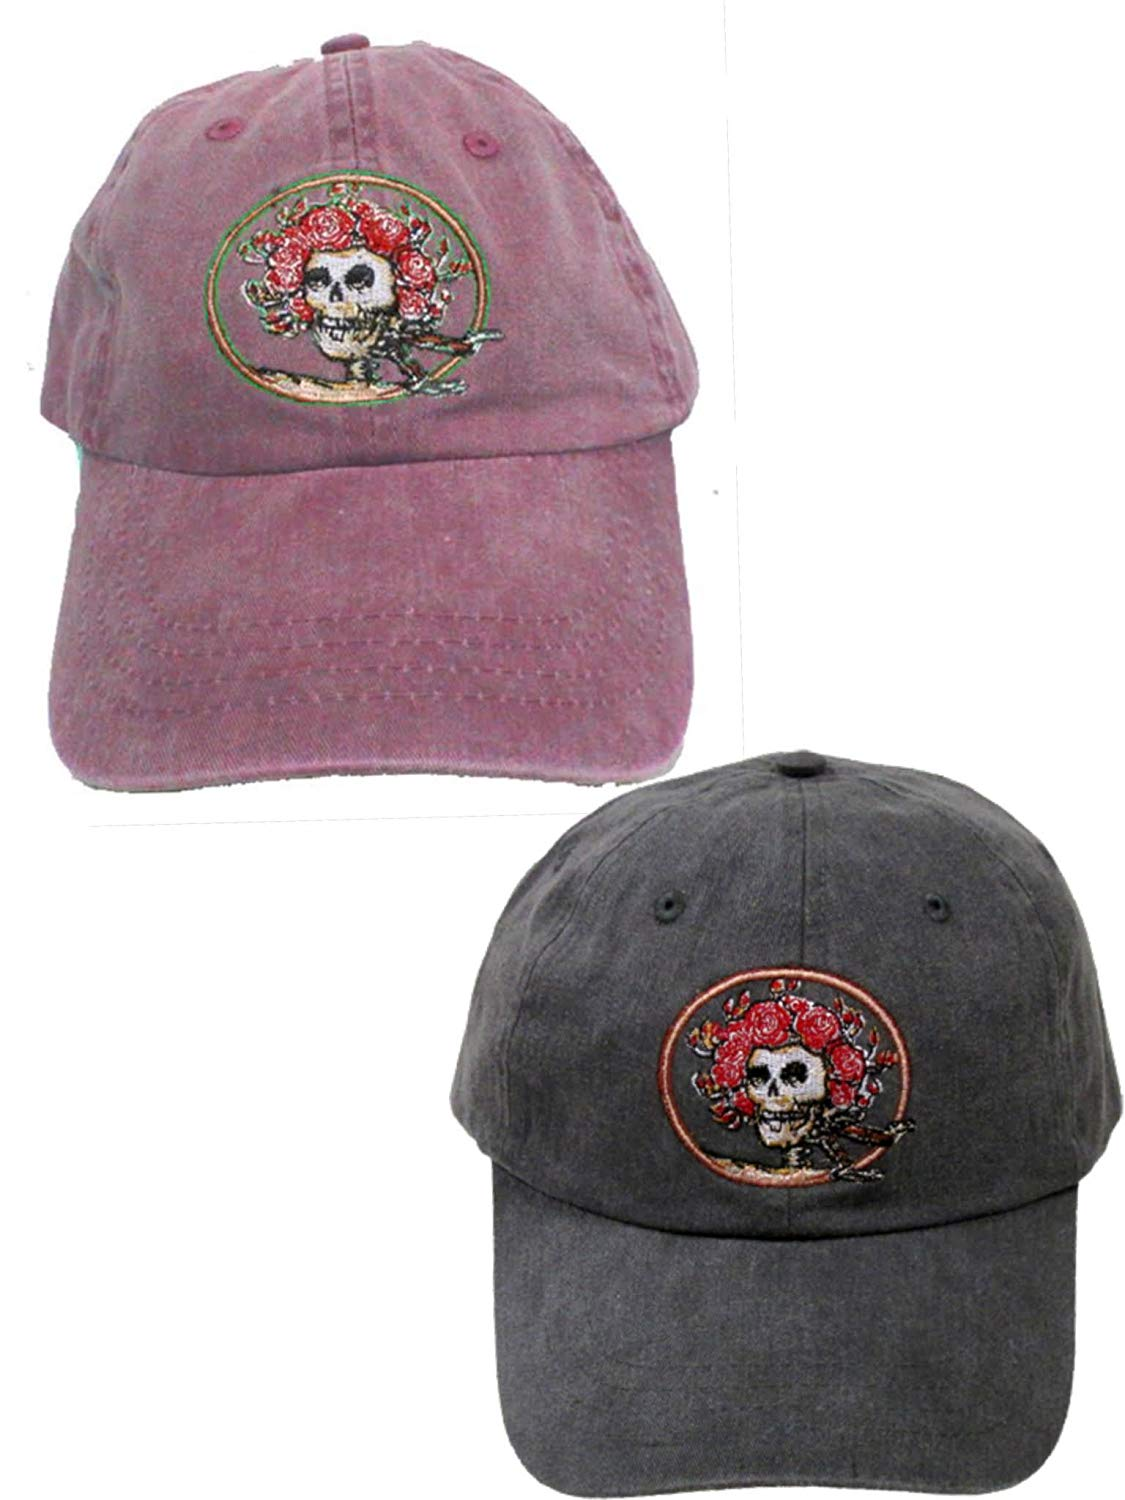 Get Quotations · Grateful Dead Skull and Roses Embroidered Hats - 2 Pack 0bb619937eee